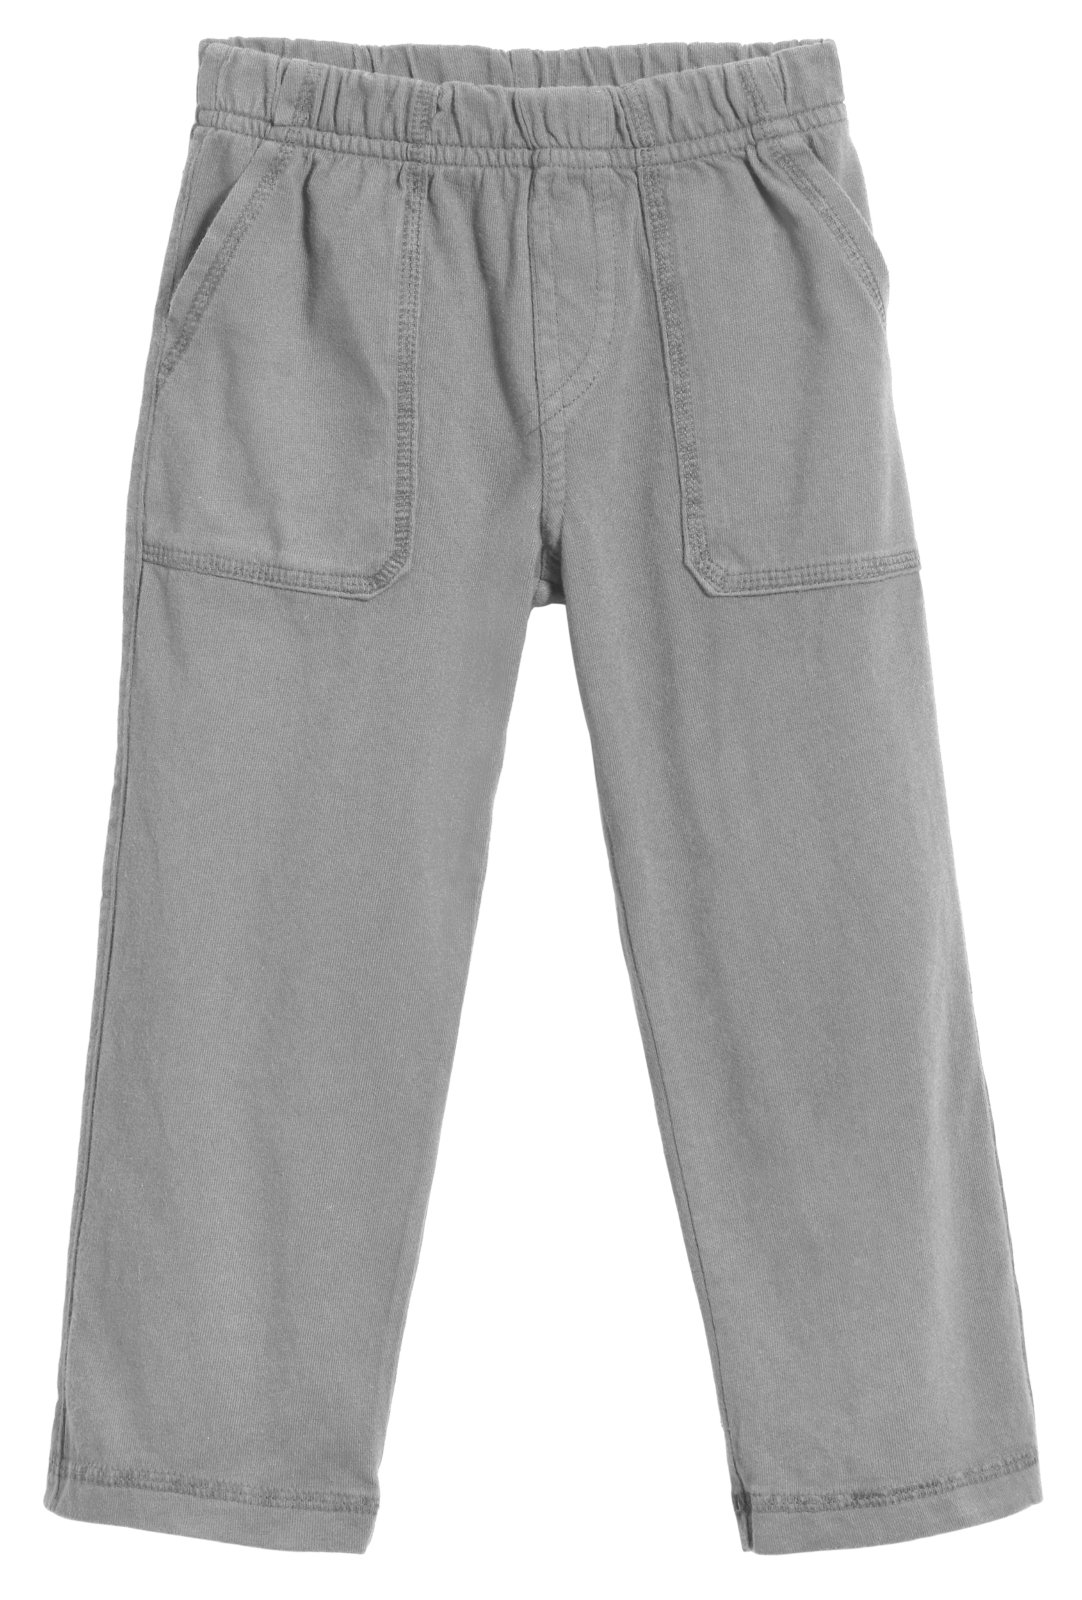 City Threads Big Boys' and Girls' Soft Jersey Tonal Stitch Pant Perfect for Sensitive Skin SPD Sensory Friendly Clothing - Road 8